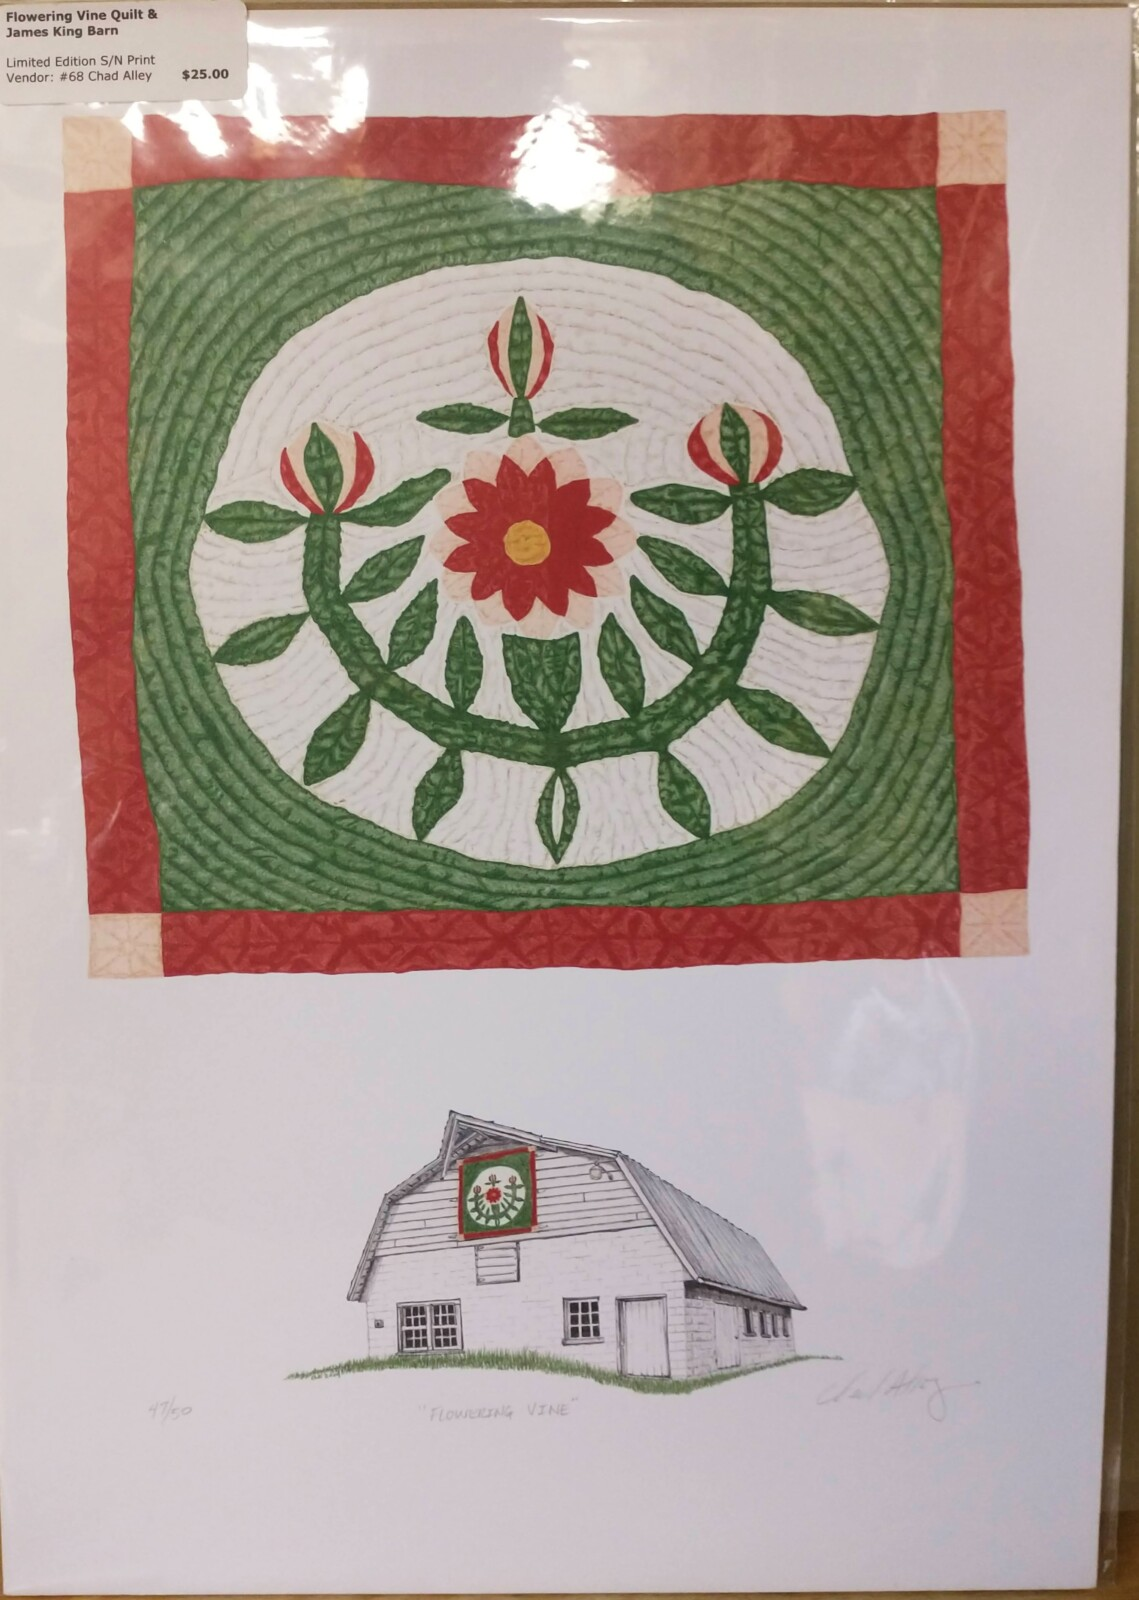 Flowering Vine Quilt & James King Barn Print